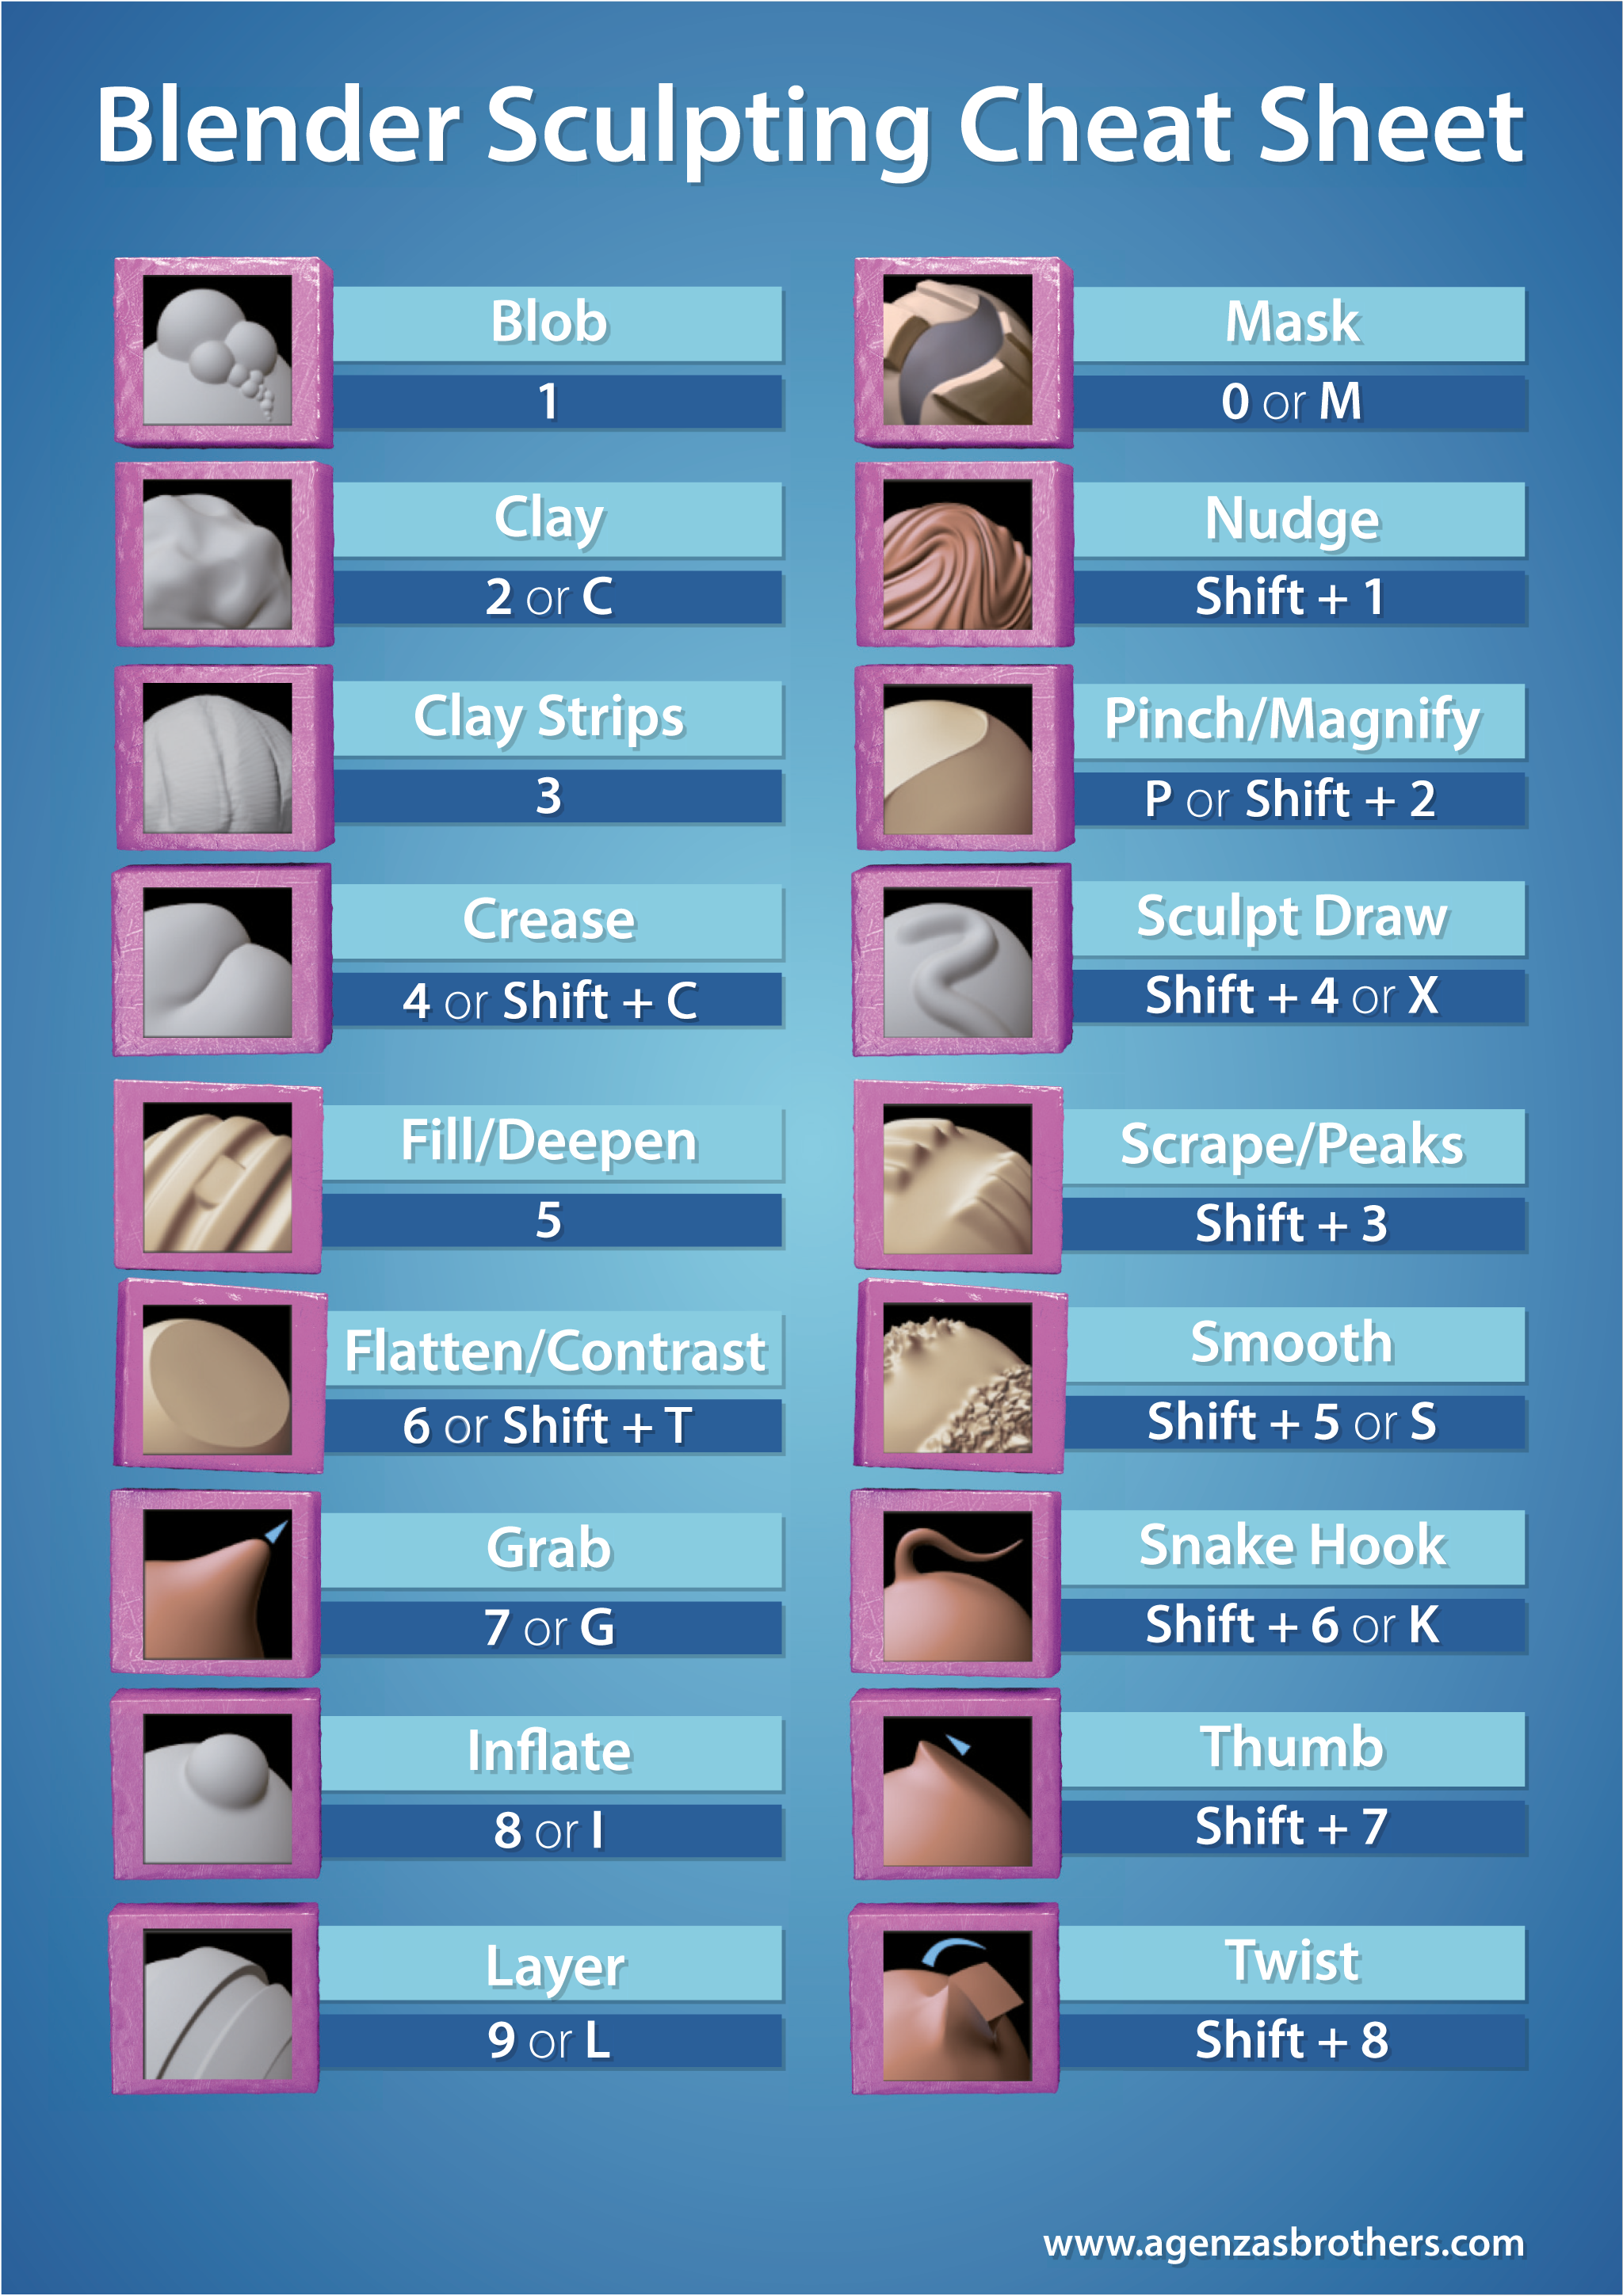 Free download blender sculpting cheat sheet agenzasbrothers free download blender sculpting cheat sheet agenzasbrothers blender 3d training 3d animation film production fandeluxe Images